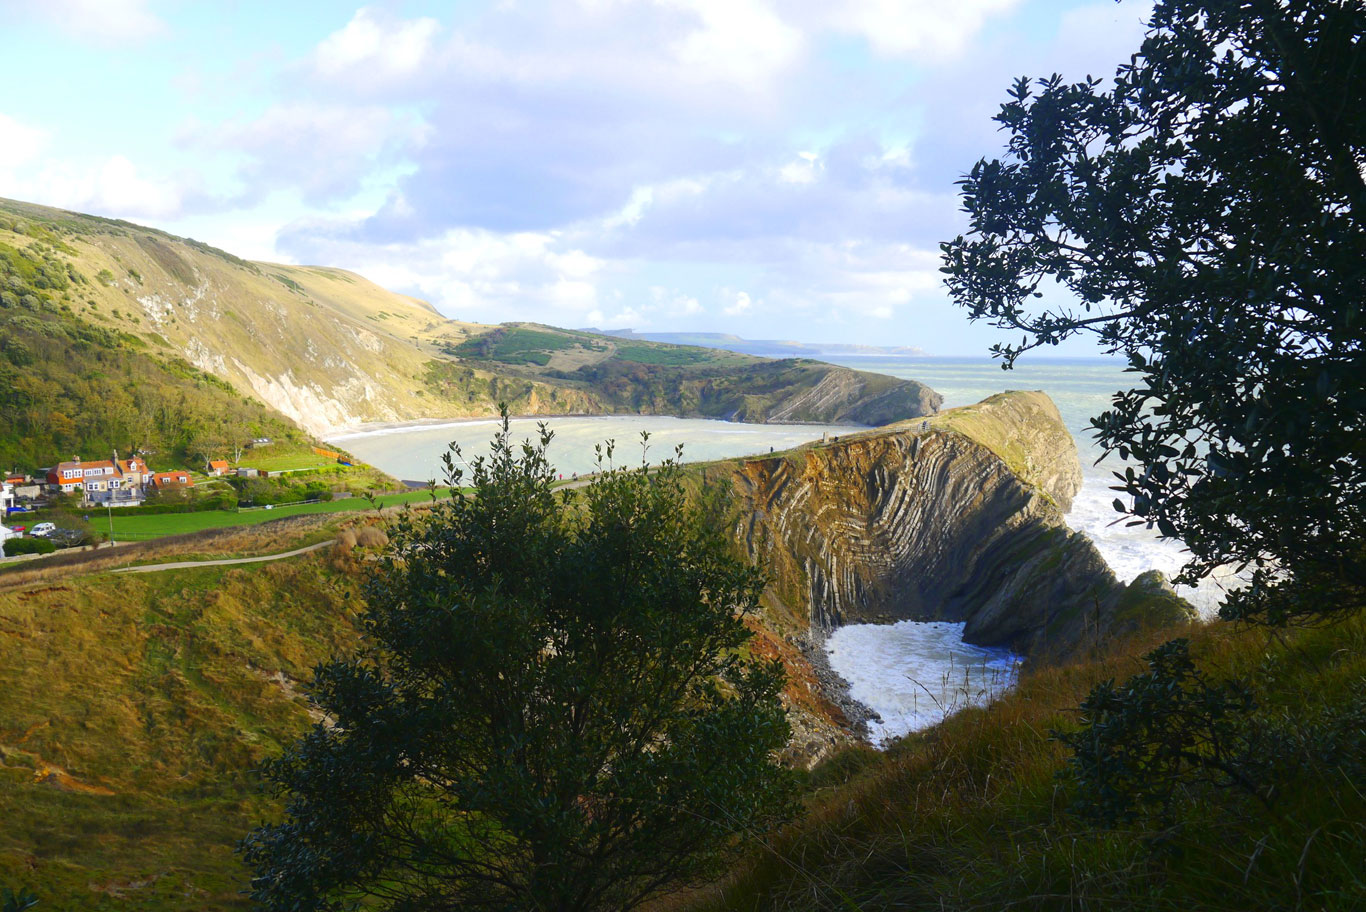 Stair Hole & The Cove